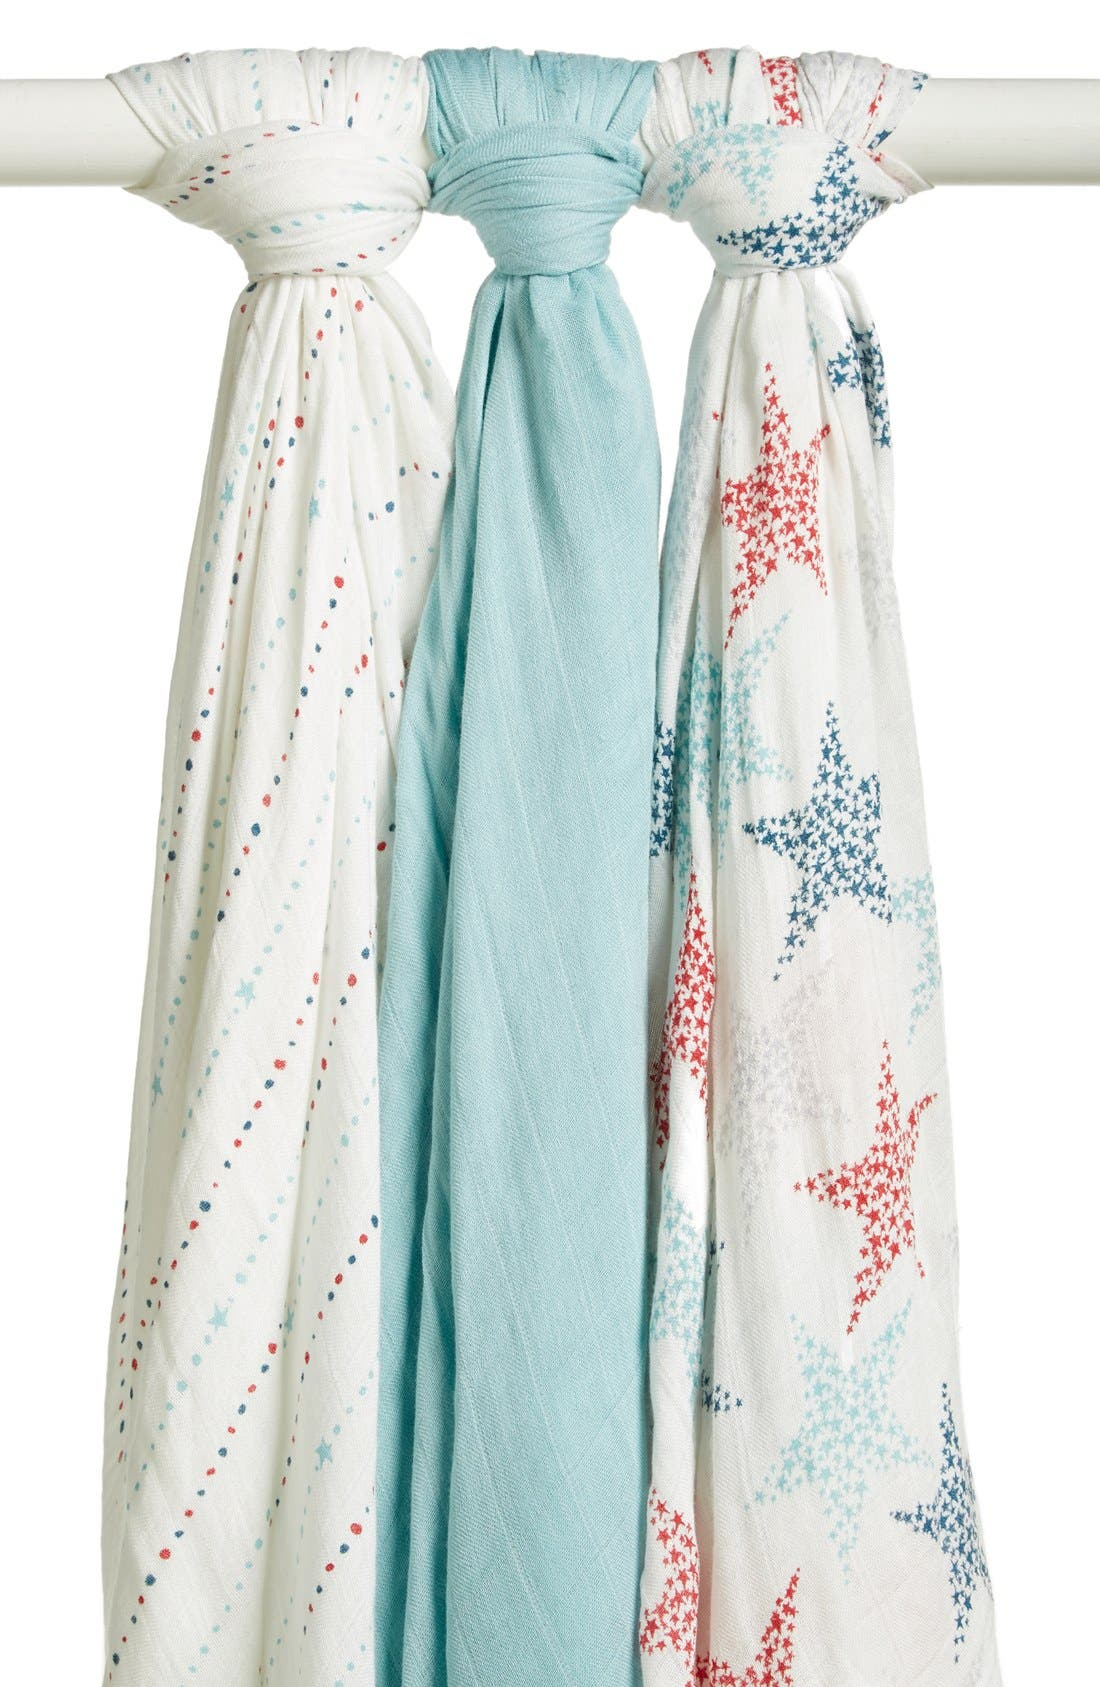 Main Image - aden + anais Print Swaddling Blanket (3-Pack) (Nordstrom Exclusive)